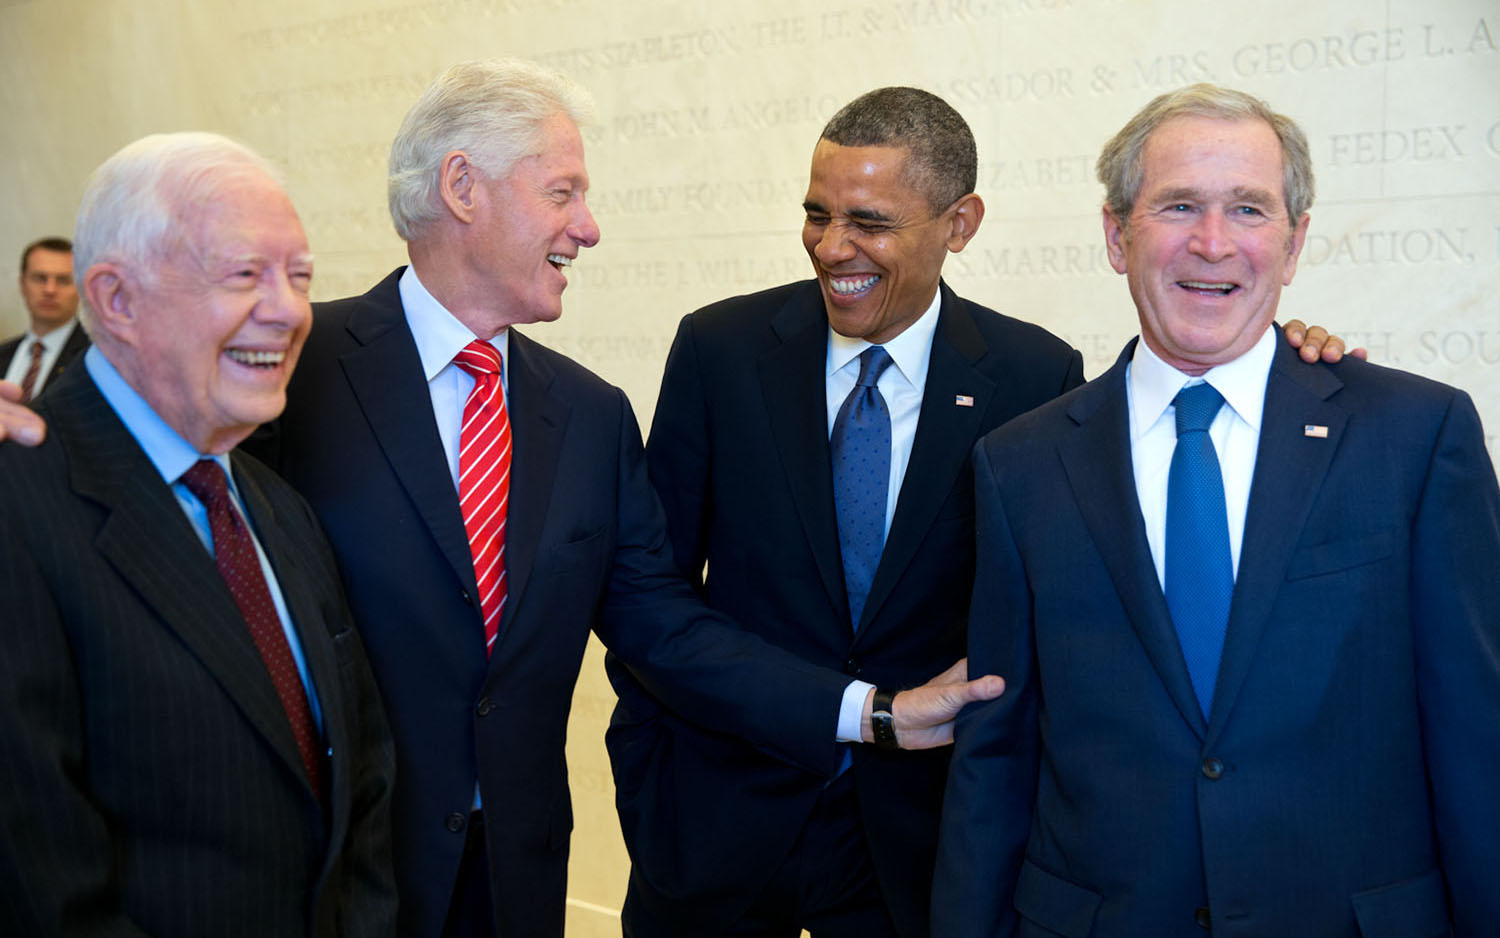 (From left) Former President Jimmy Carter, Former President Bill Clinton, Current President Barack Obama and Former President George W. Bush